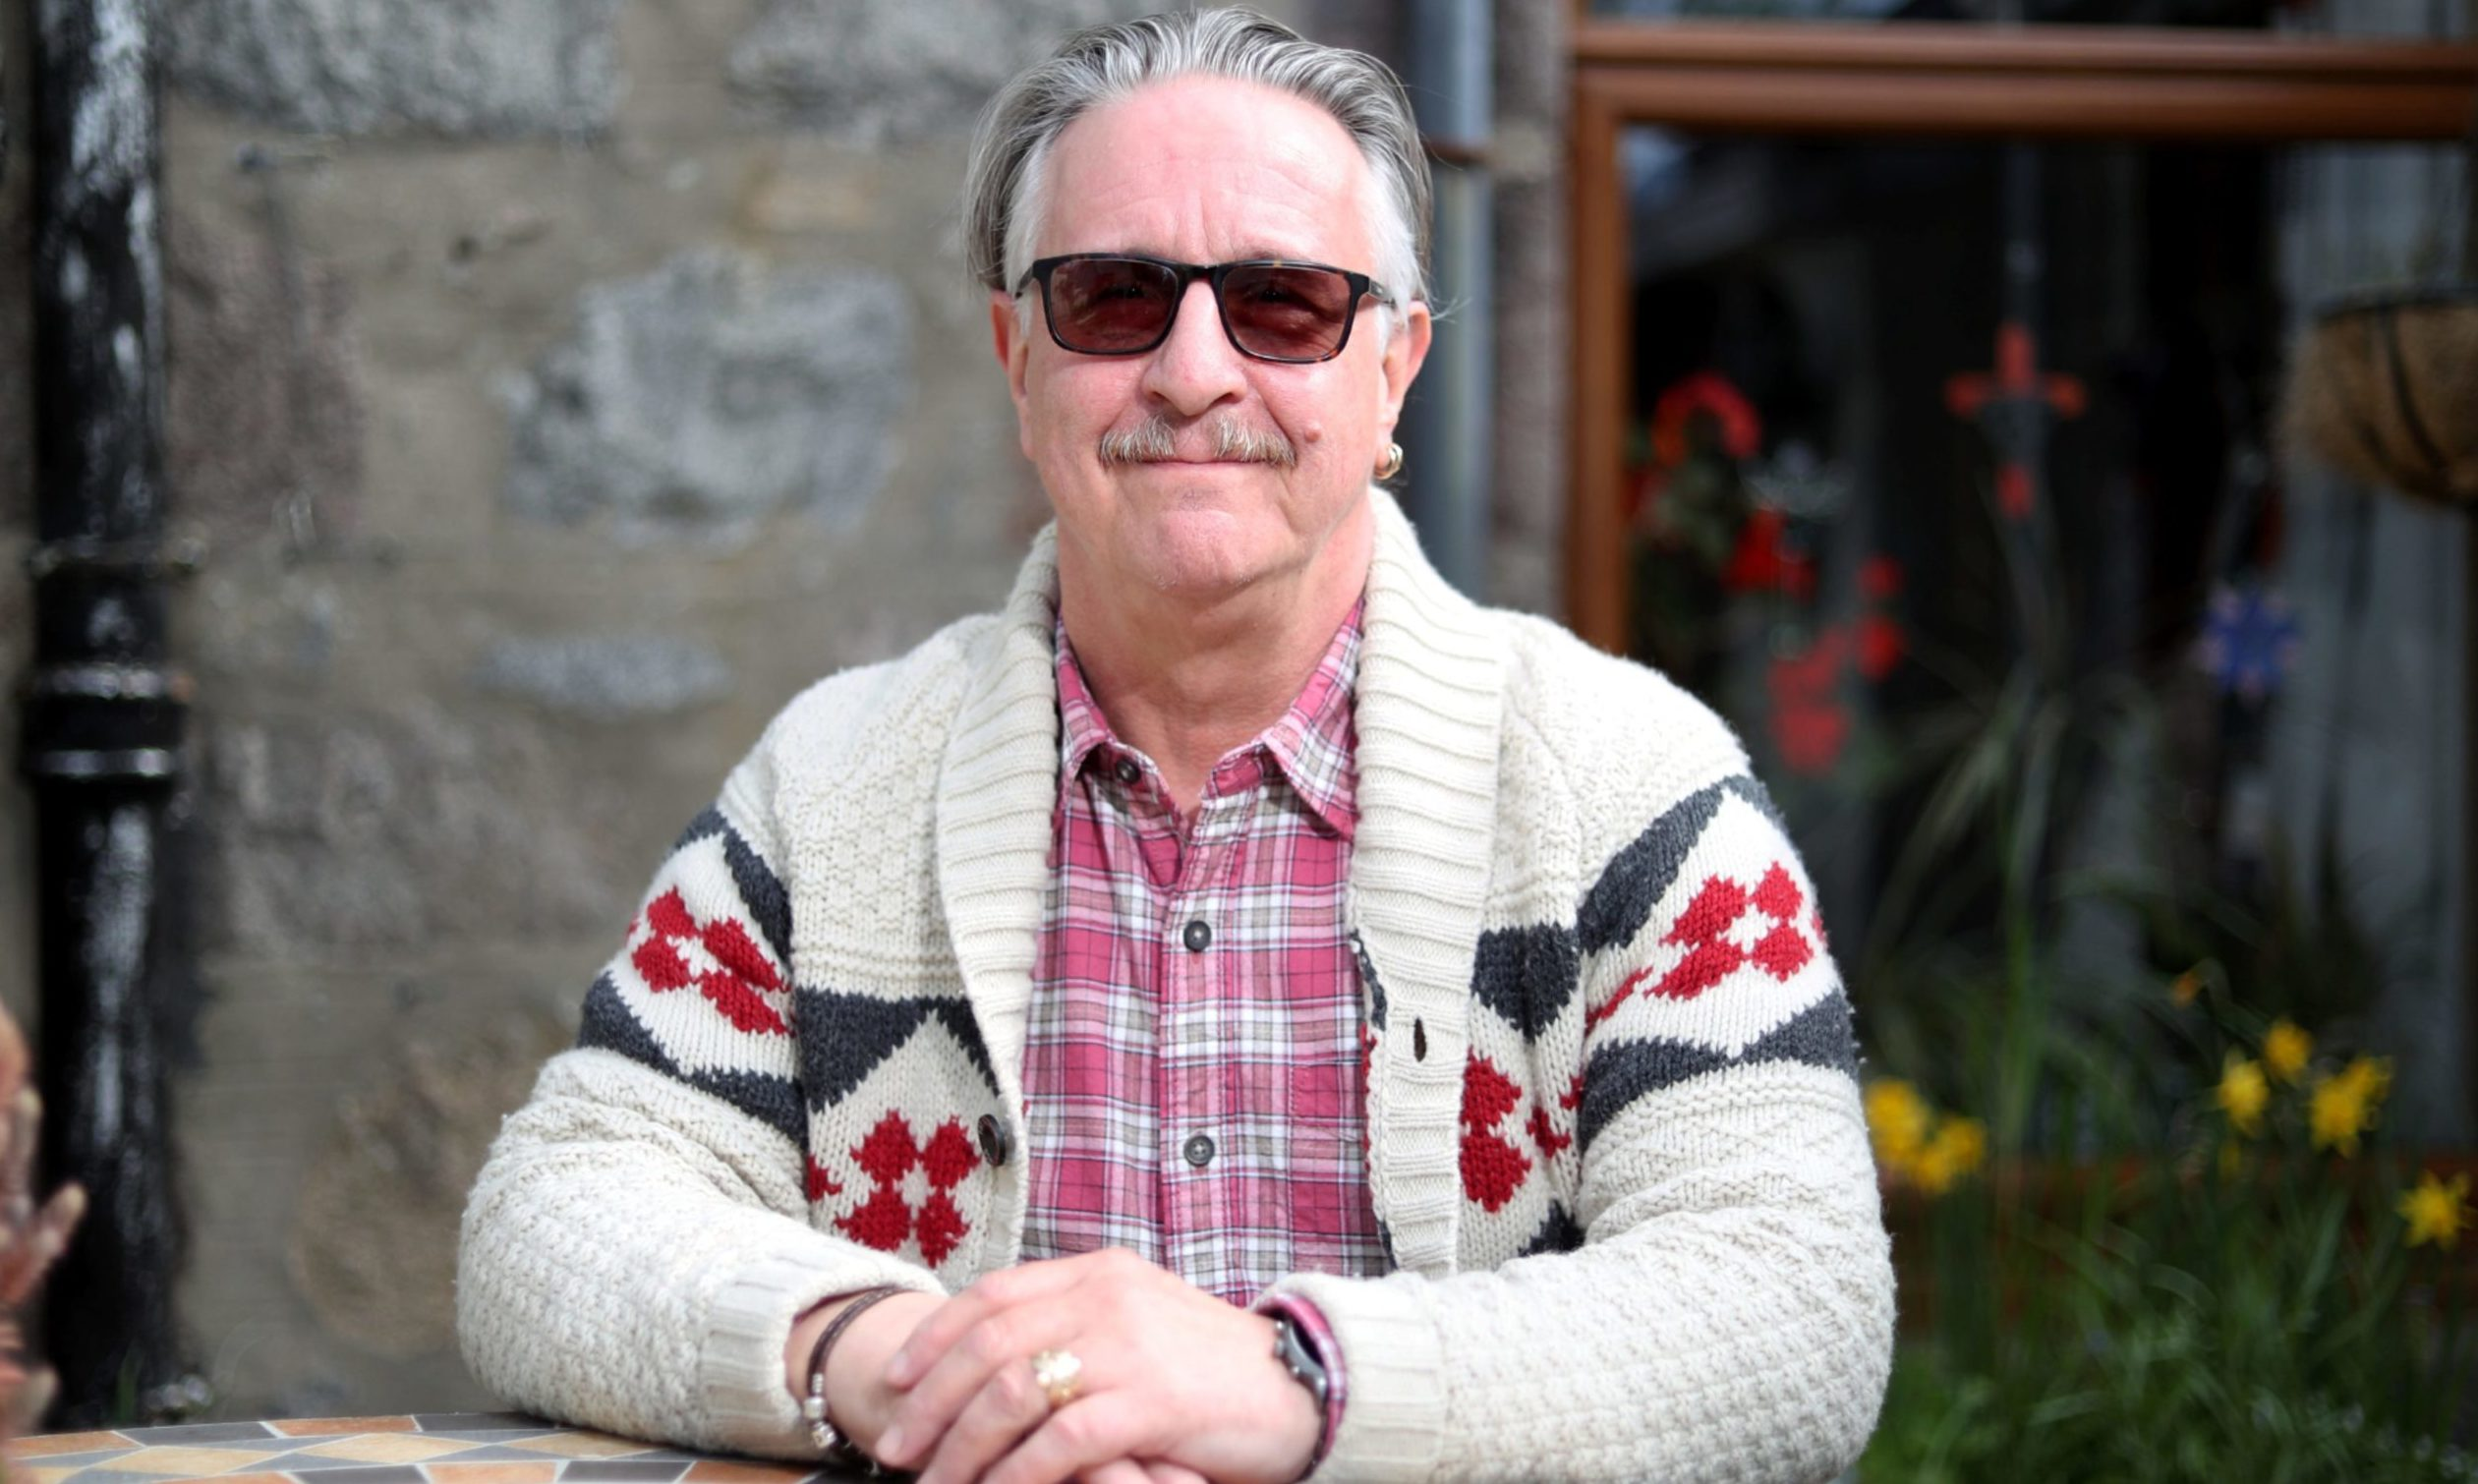 Dermot is working to reduce the stigma surrounding drugs and alcohol problems.